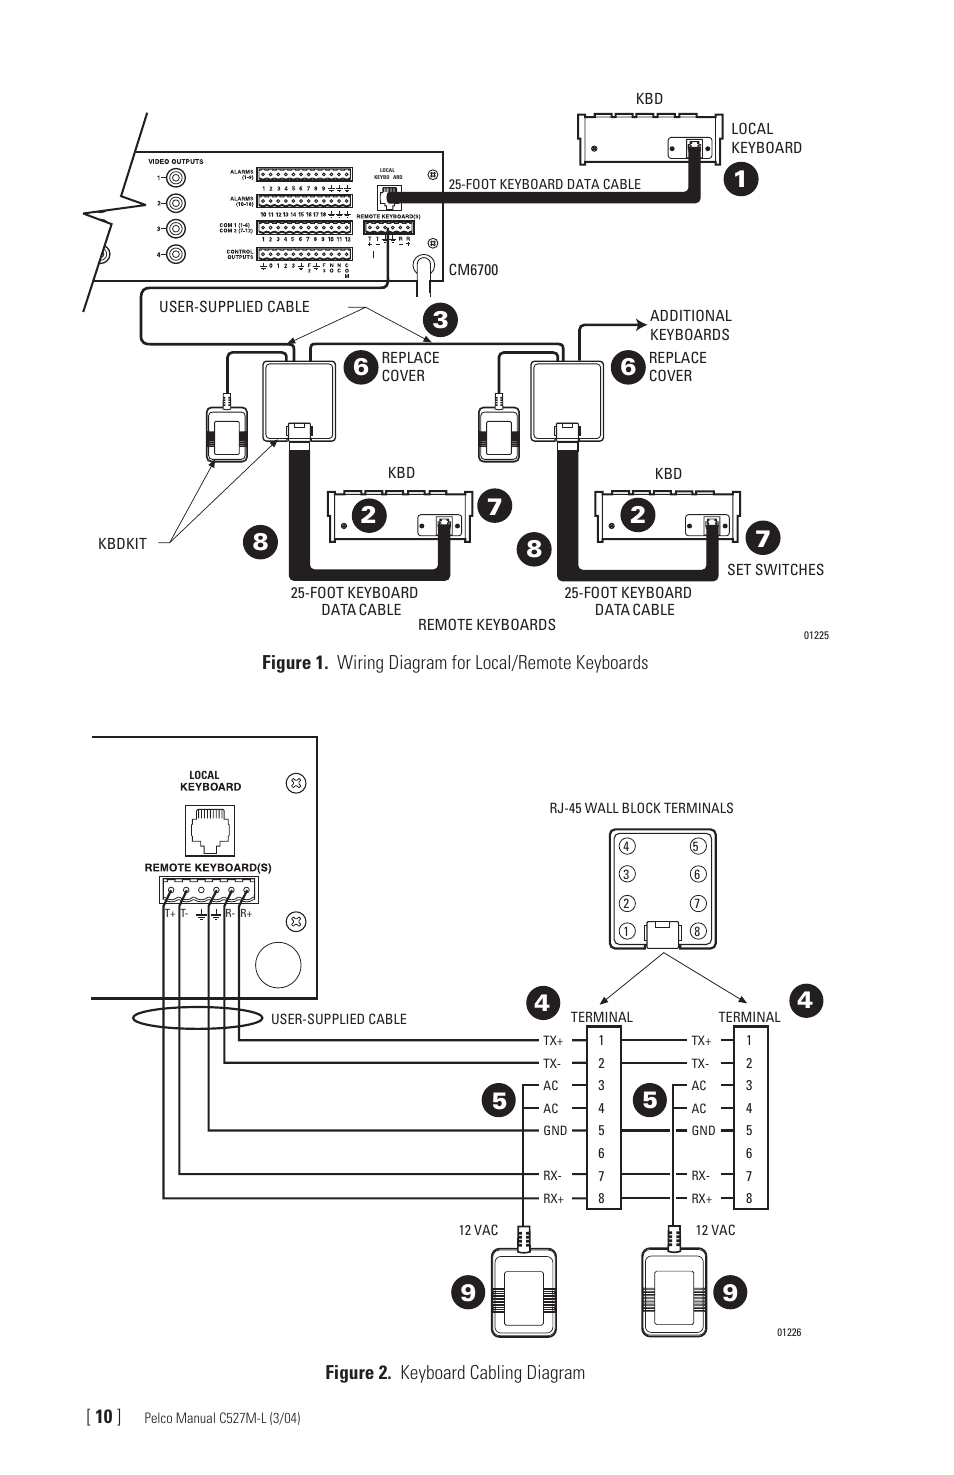 pelco keyboard wiring diagram pelco ptz wiring diagram